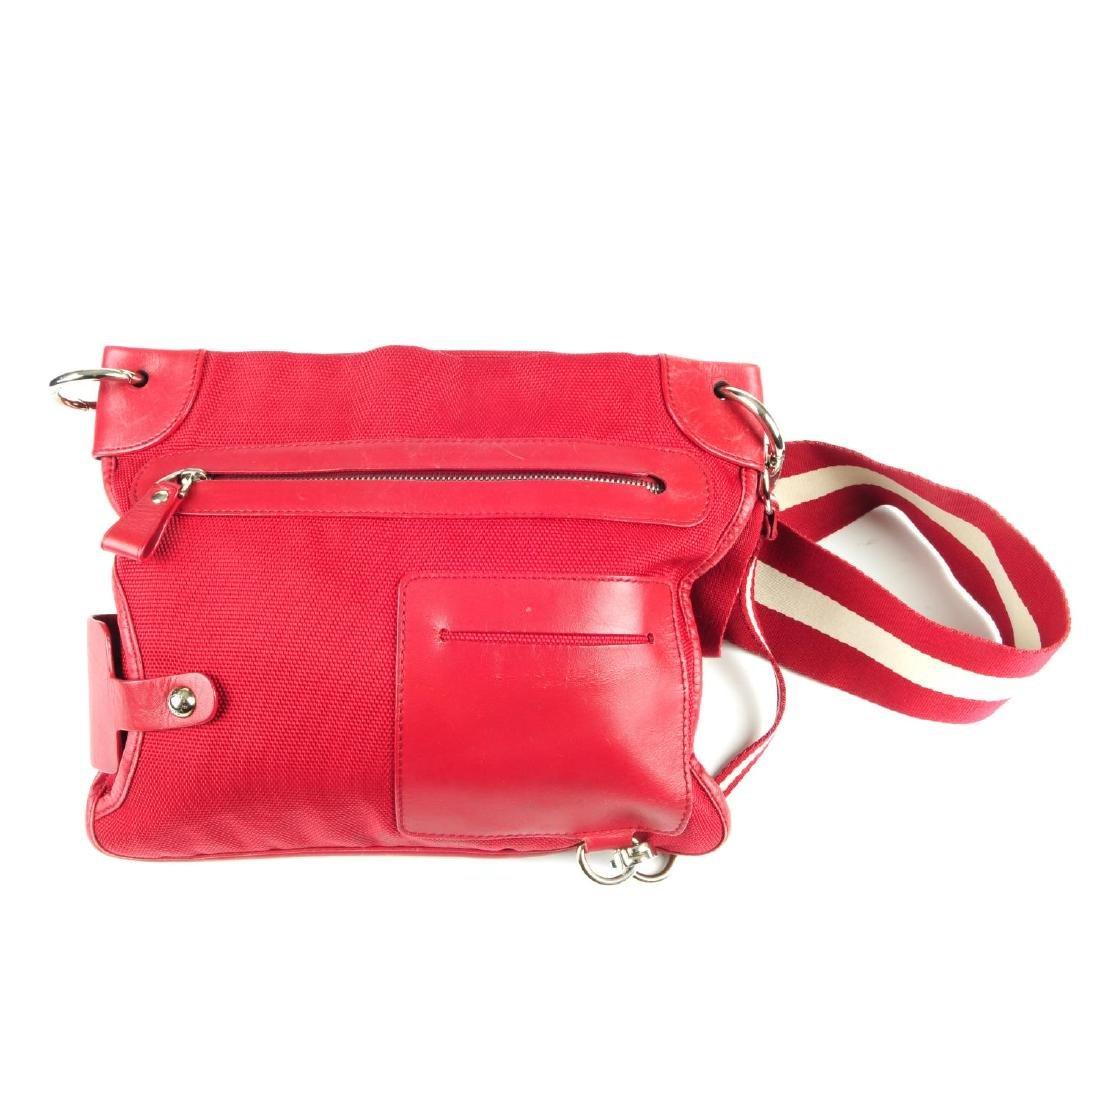 Two designer handbags. To include a red canvas Bally